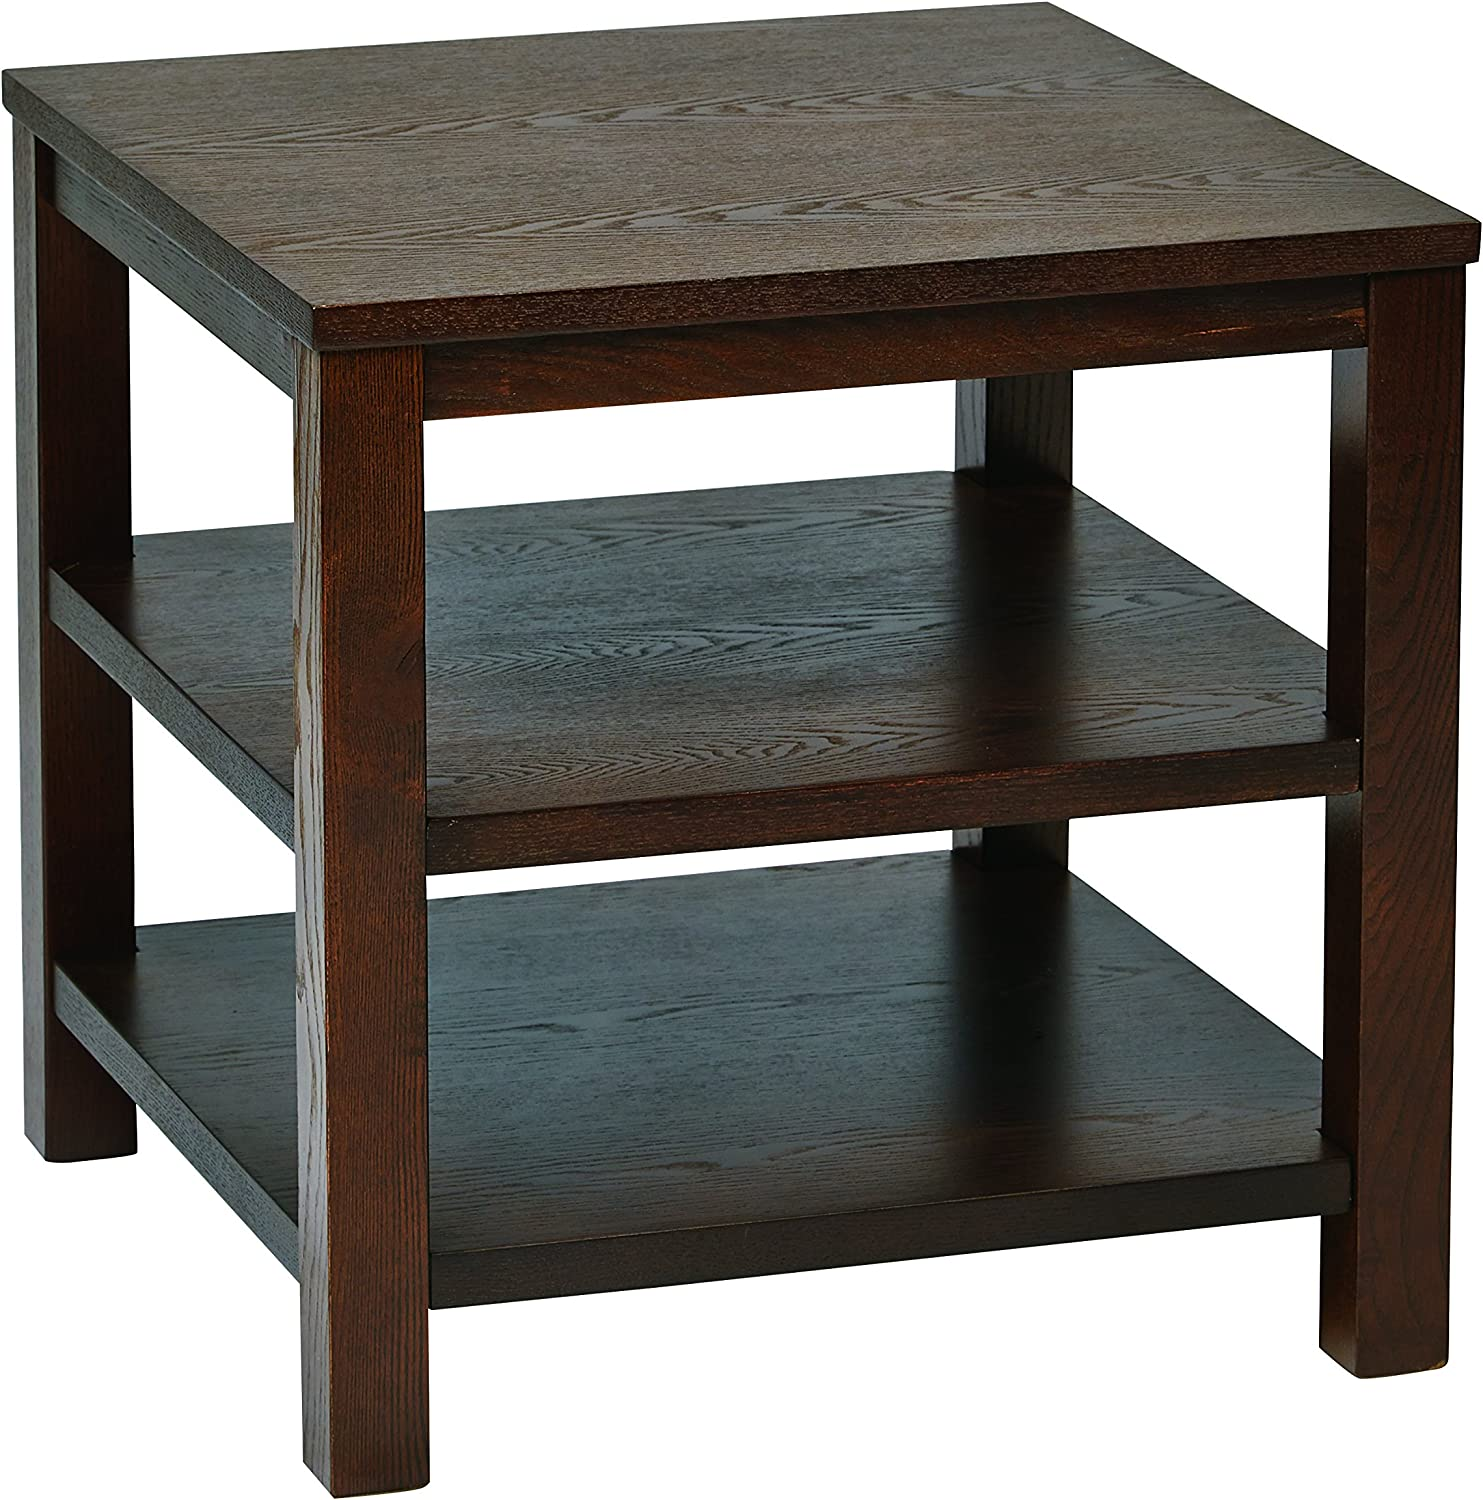 "OSP Home Furnishings Merge Square End Table, 20"", Espresso"